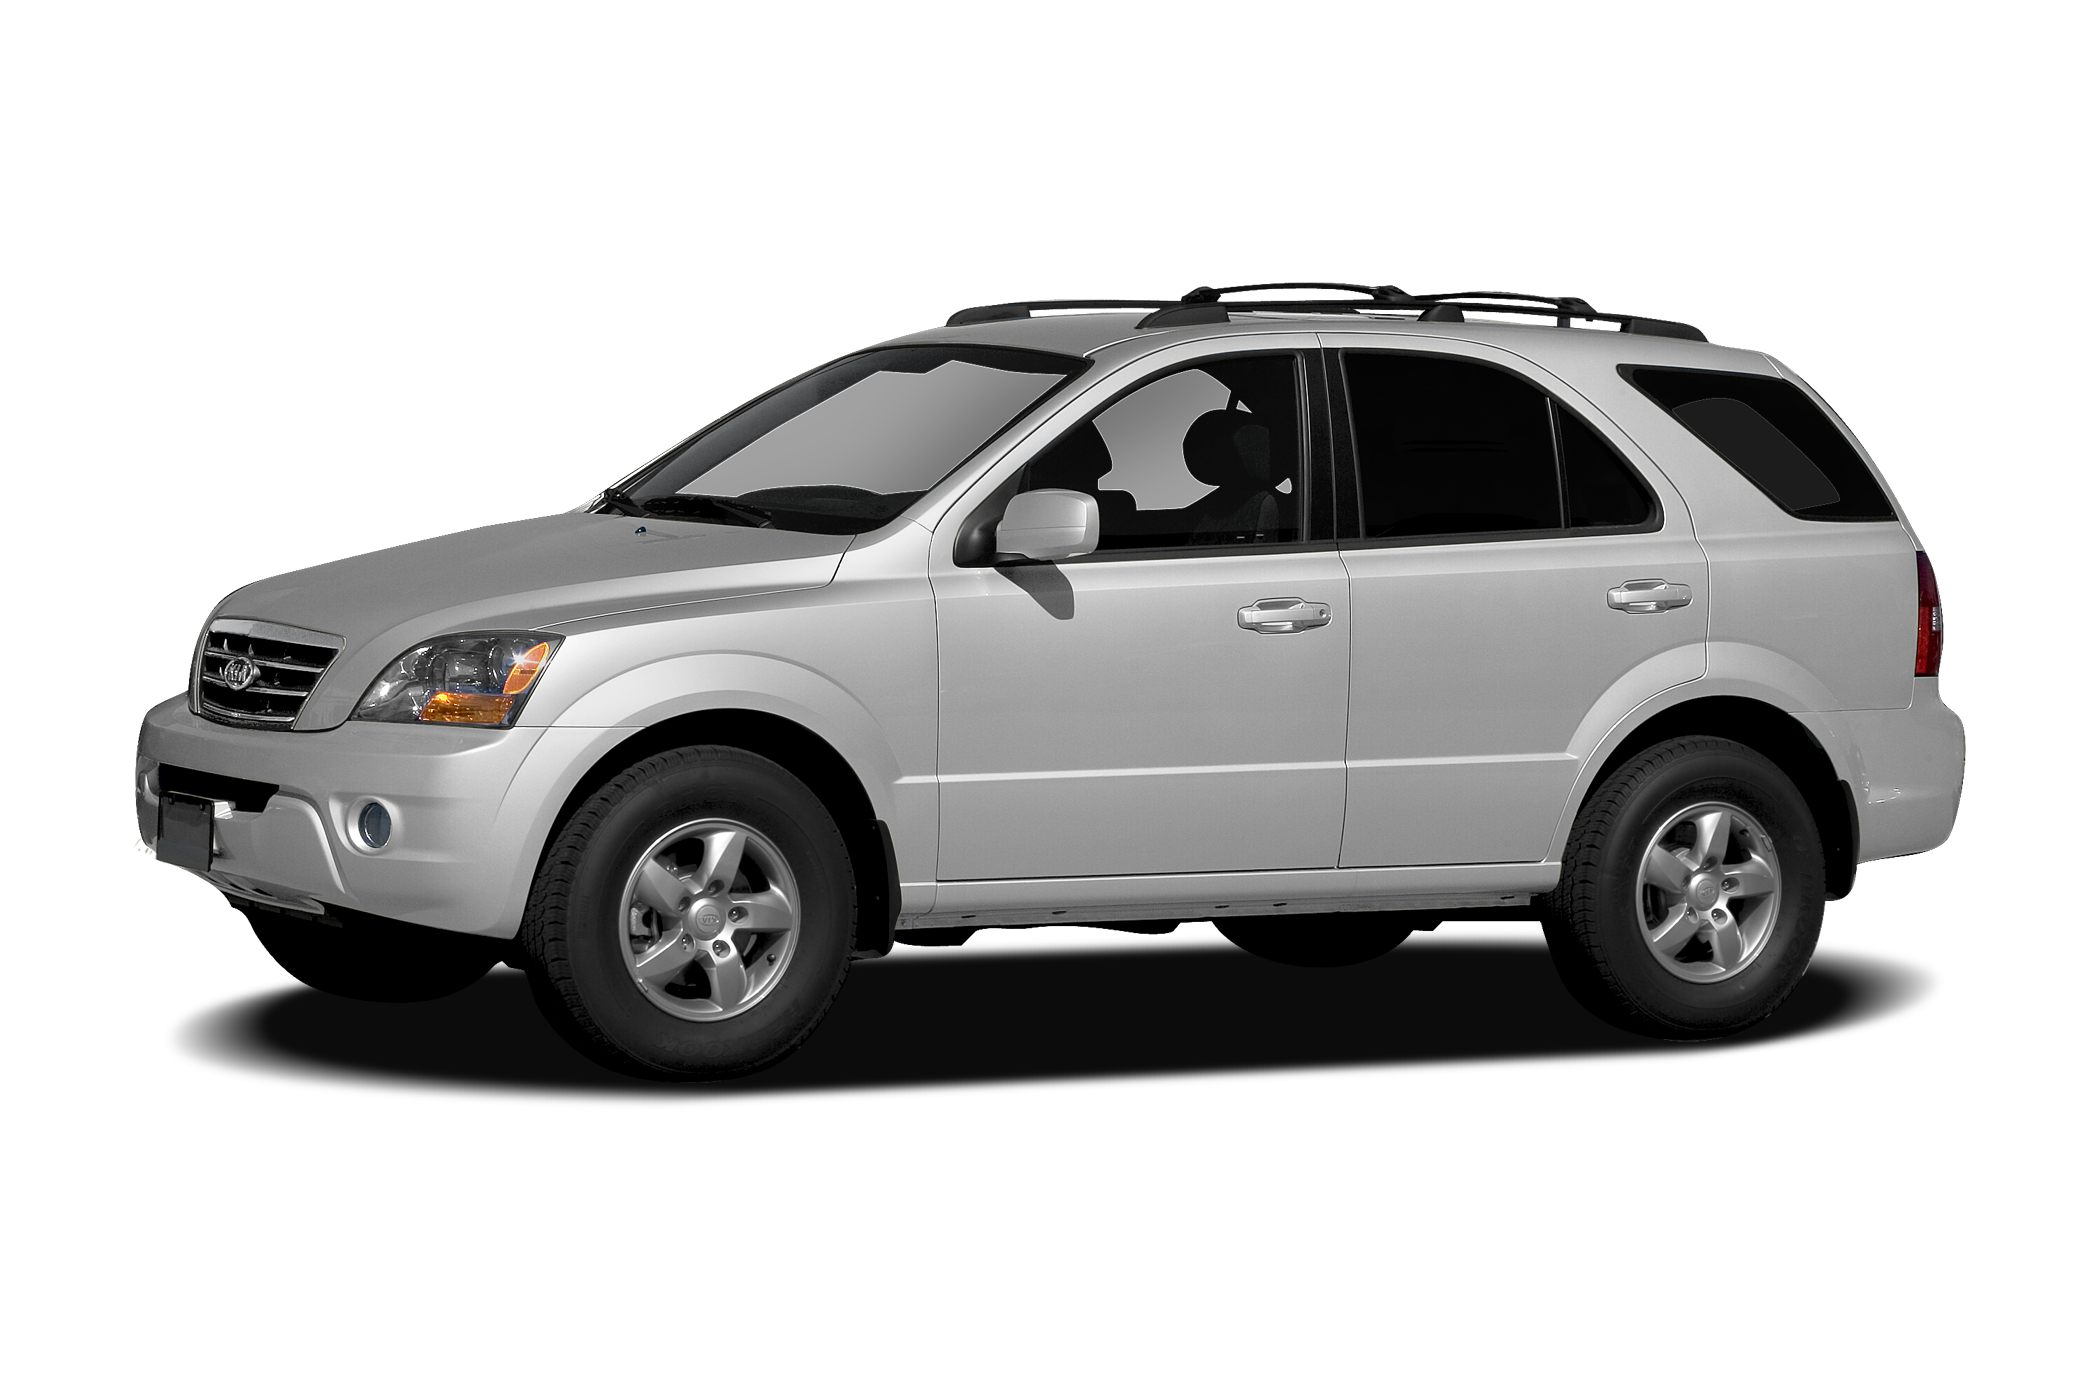 2008 Kia Sorento LX CLEAN TRADETHIS VEHICLE COMES WITH OUR BEST PRICE GUARANTEE FIND A BETTER ON